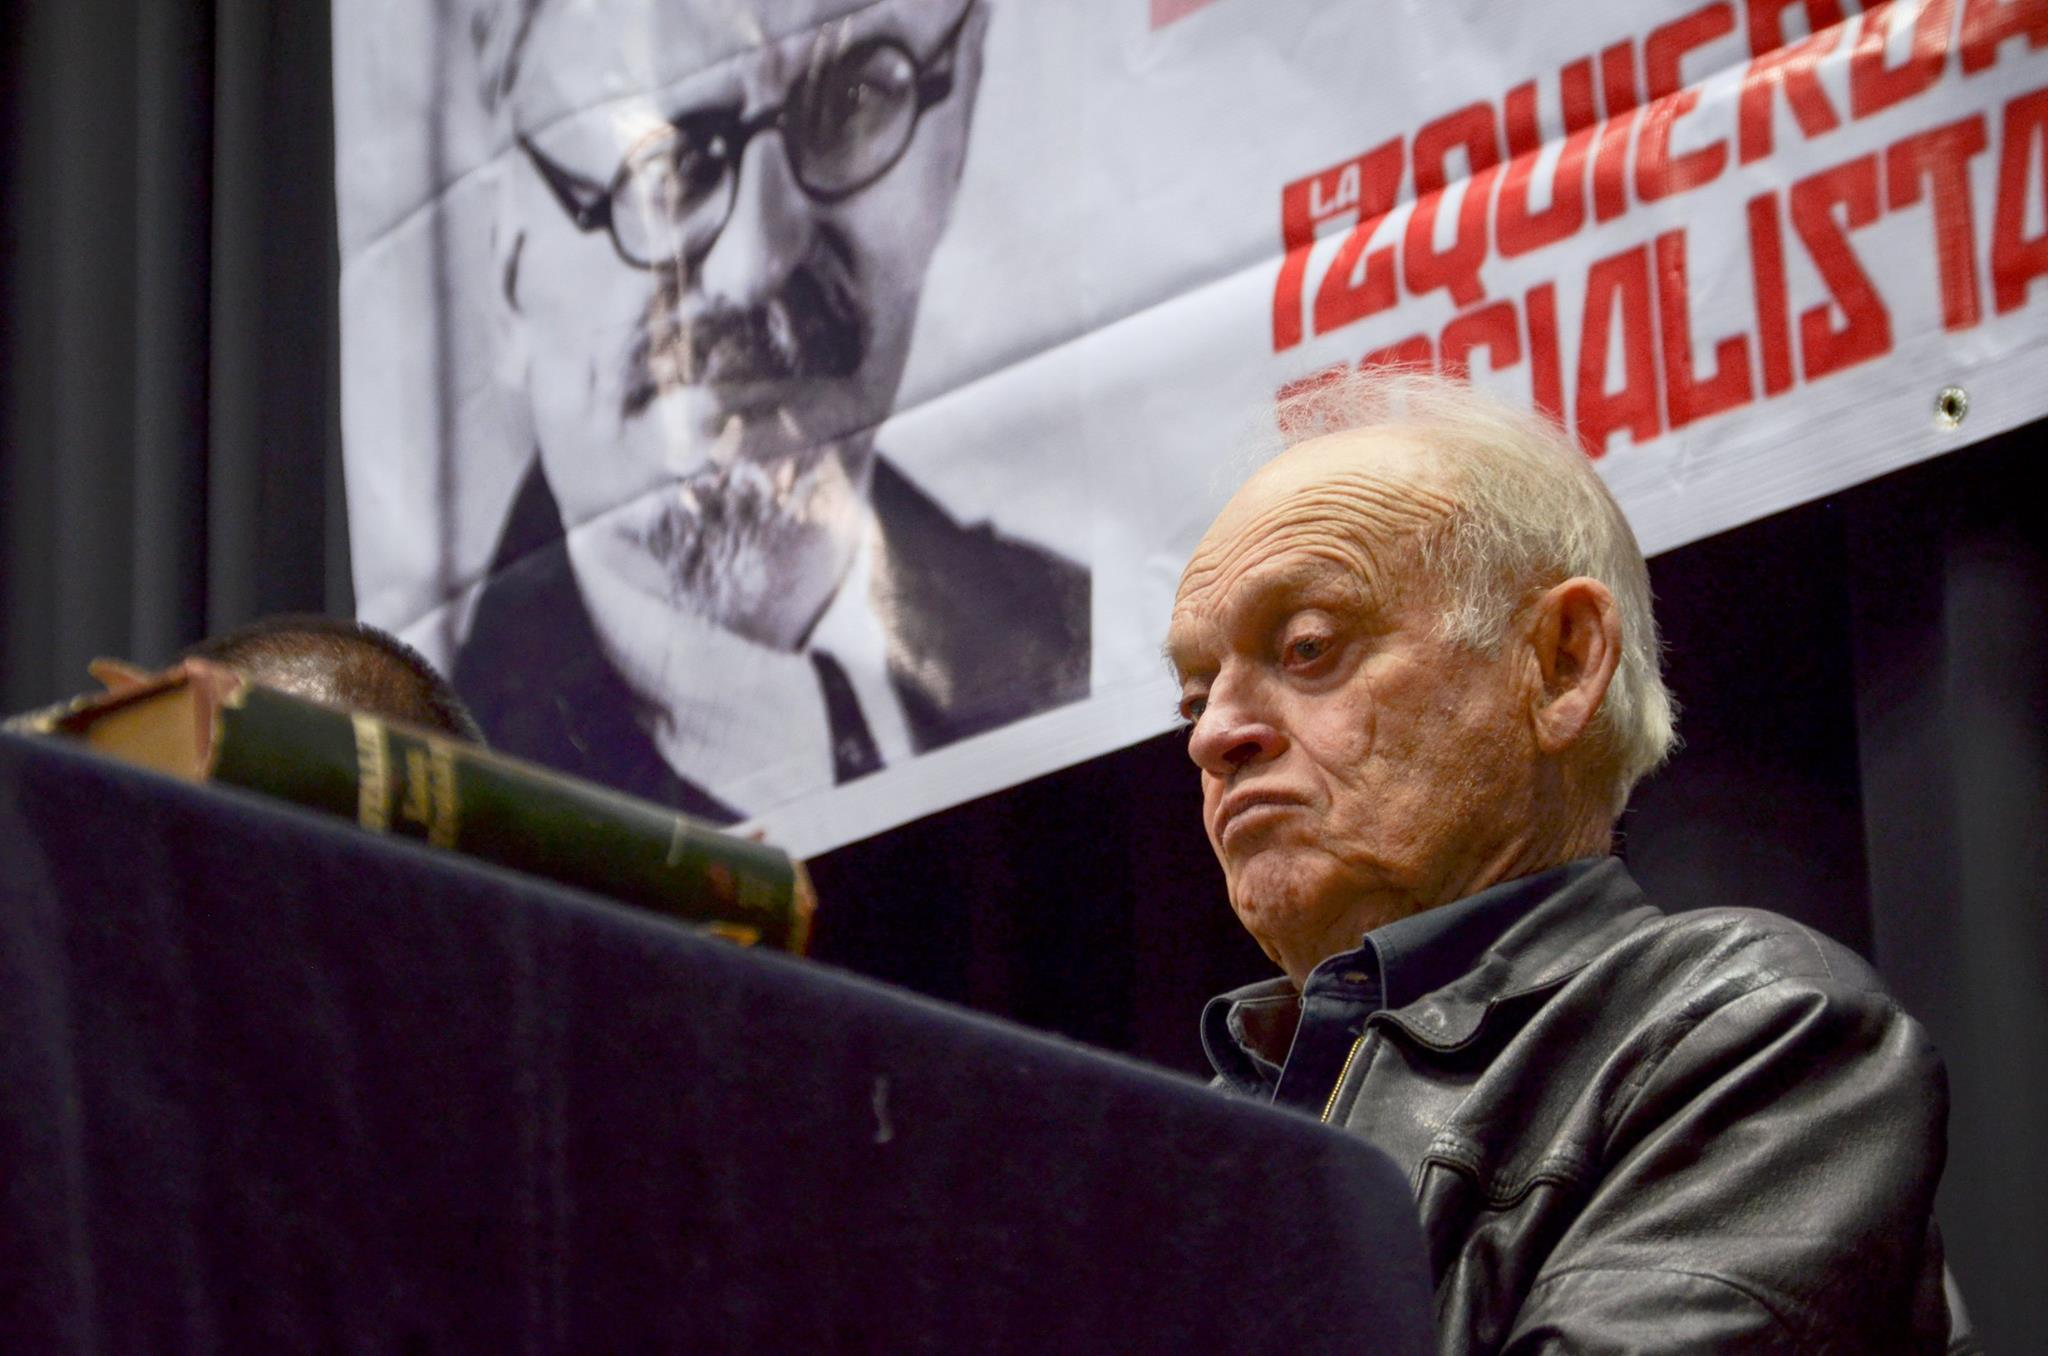 Volkov (Trotsky's grandson) speaks on the October Revolution